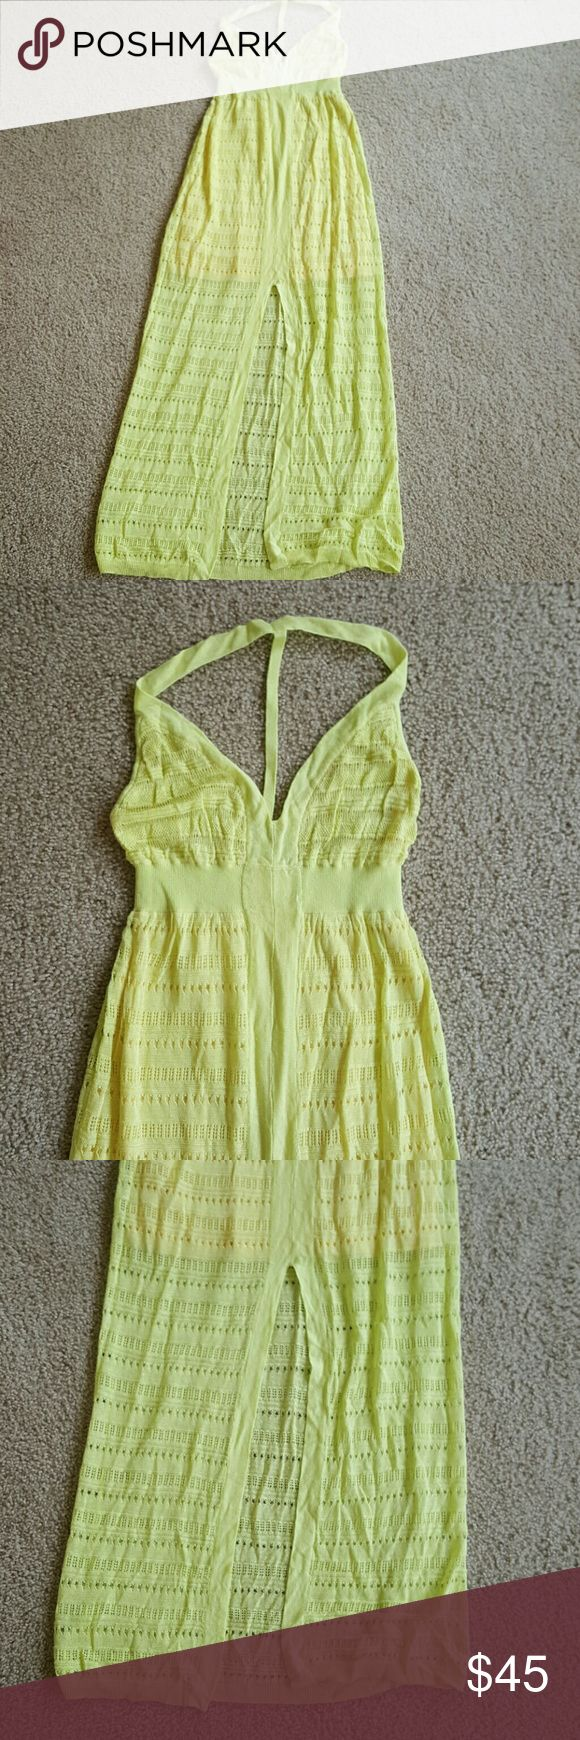 Victorias secret knitted dress new size S New dress from Victoria Secret.  Size S. Victoria's Secret Dresses Maxi